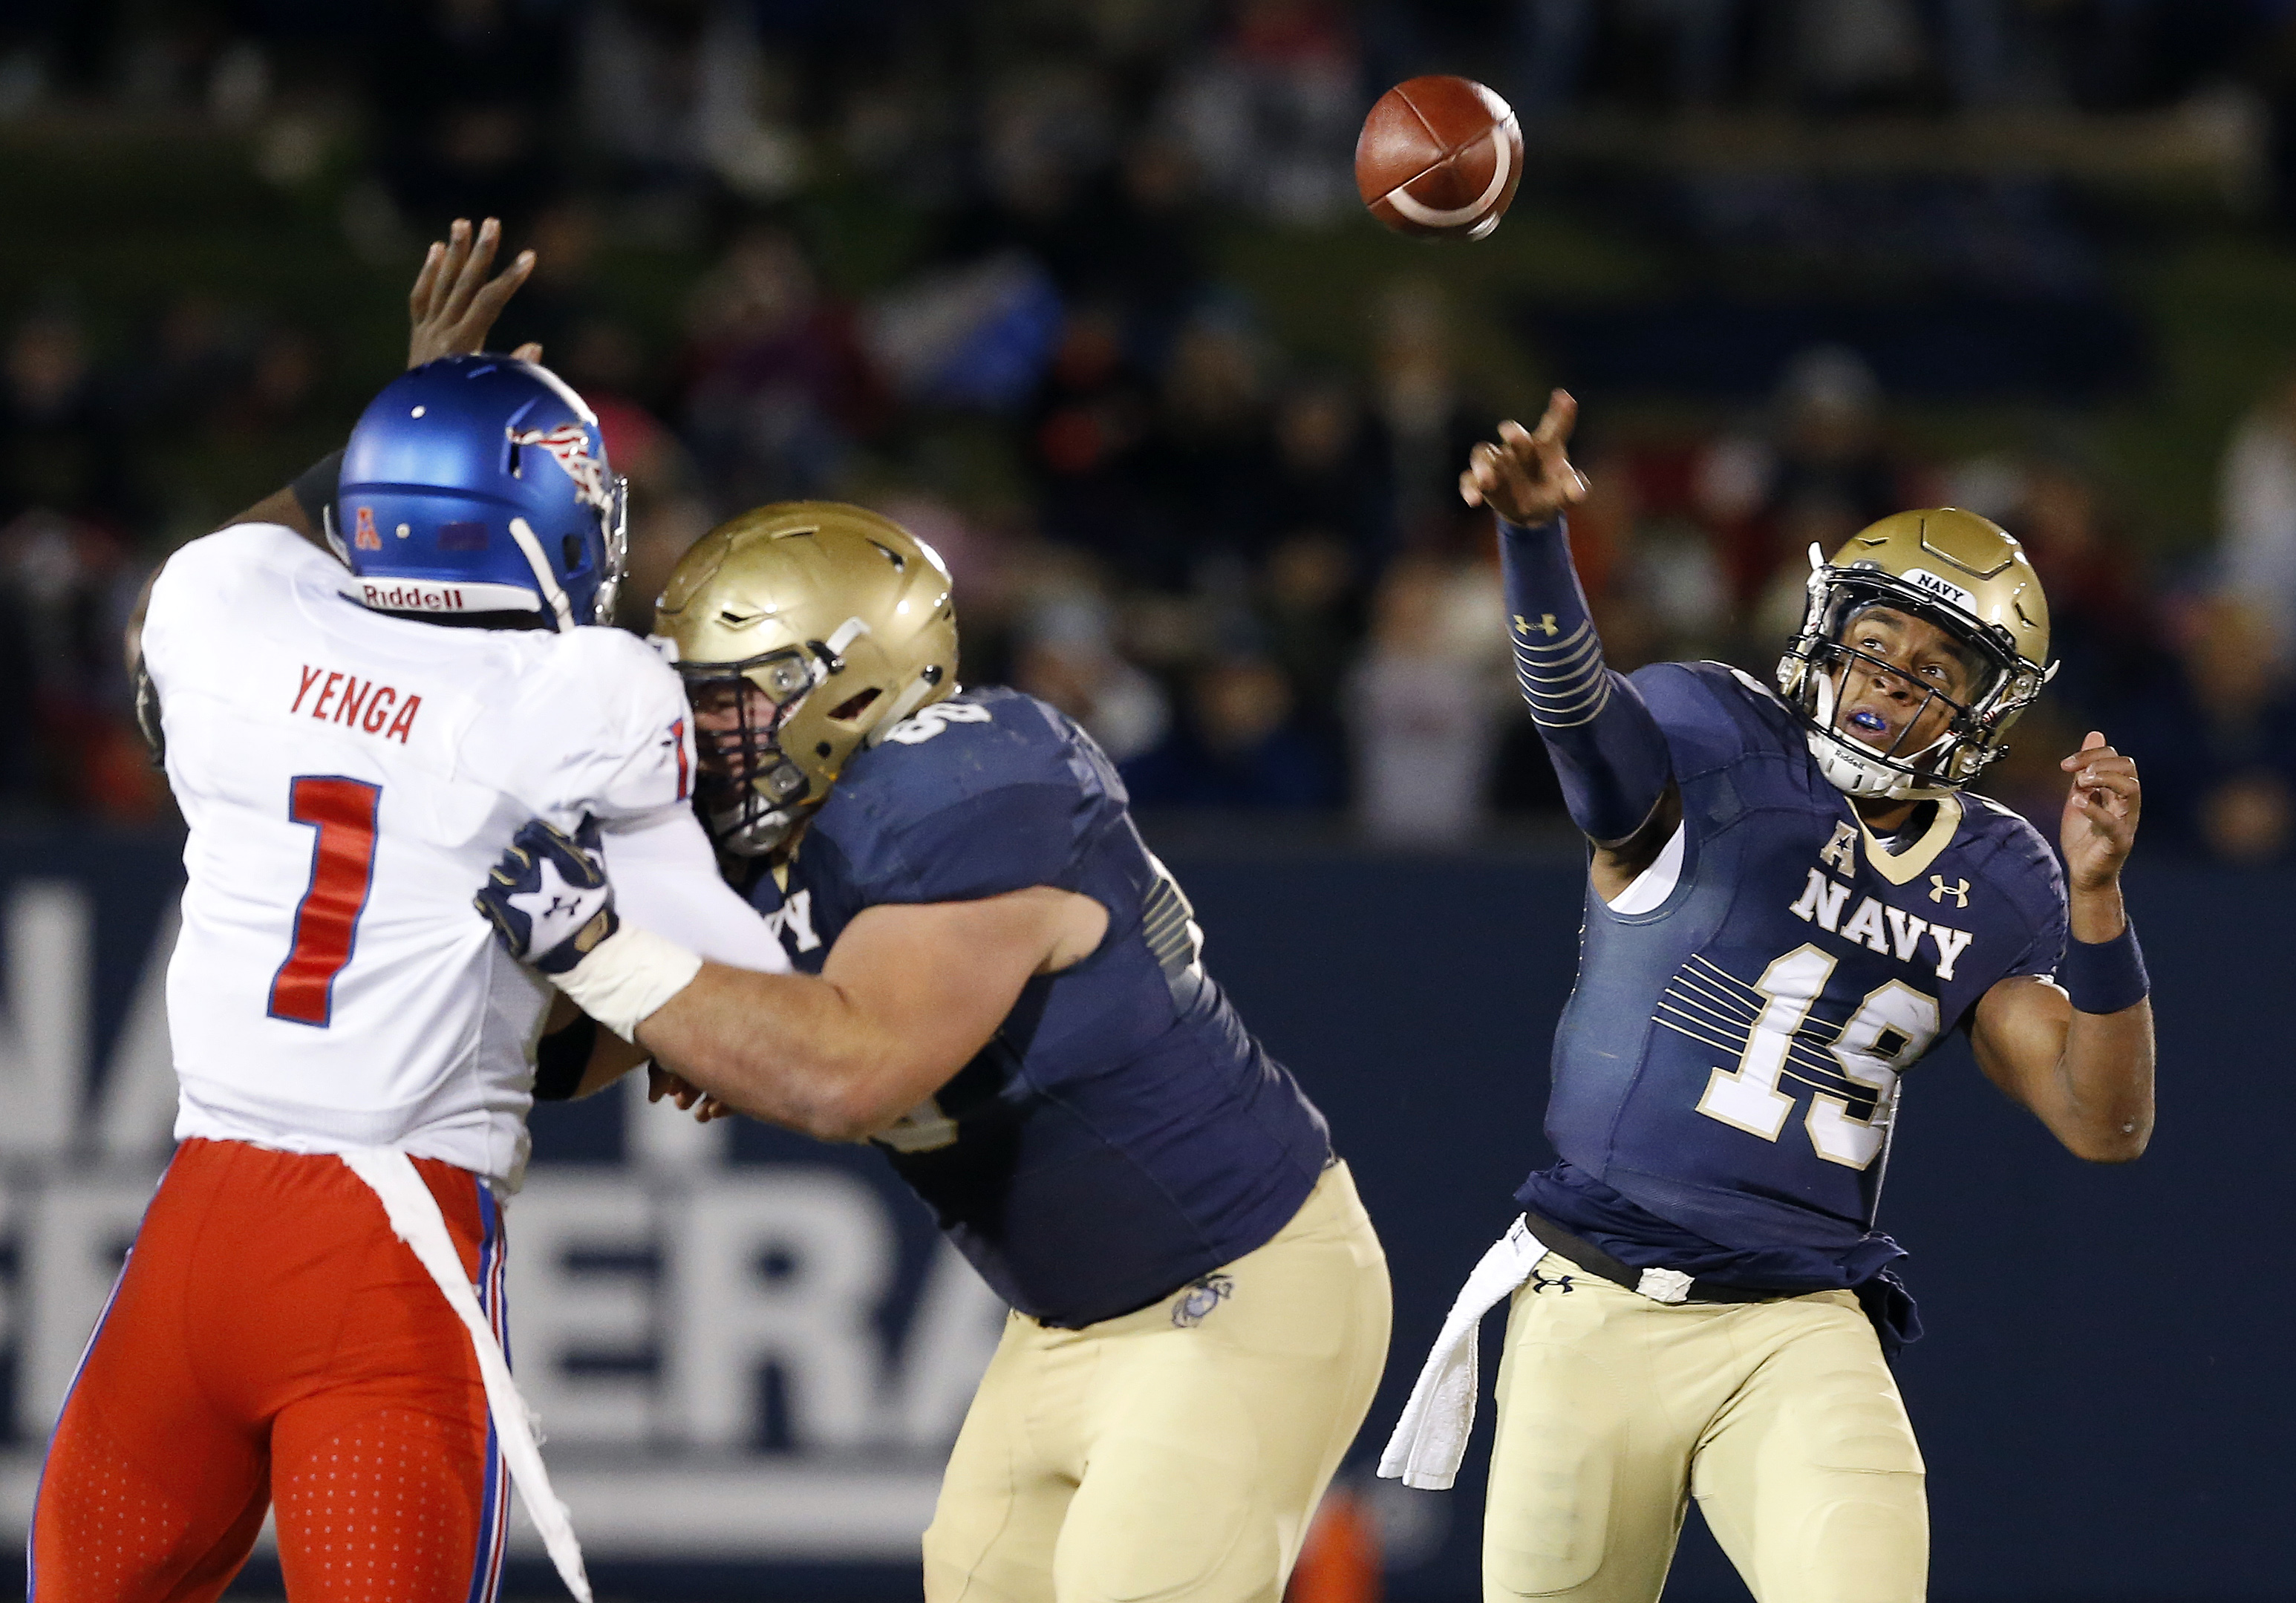 FILE - In this Saturday, Nov. 14, 2015, file photo, Navy quarterback Keenan Reynolds (19) throws to a receiver as guard Ben Tamburello, center, blocks SMU linebacker Jonathan Yenga in the second half of an NCAA college football game, in Annapolis, Md. Nav